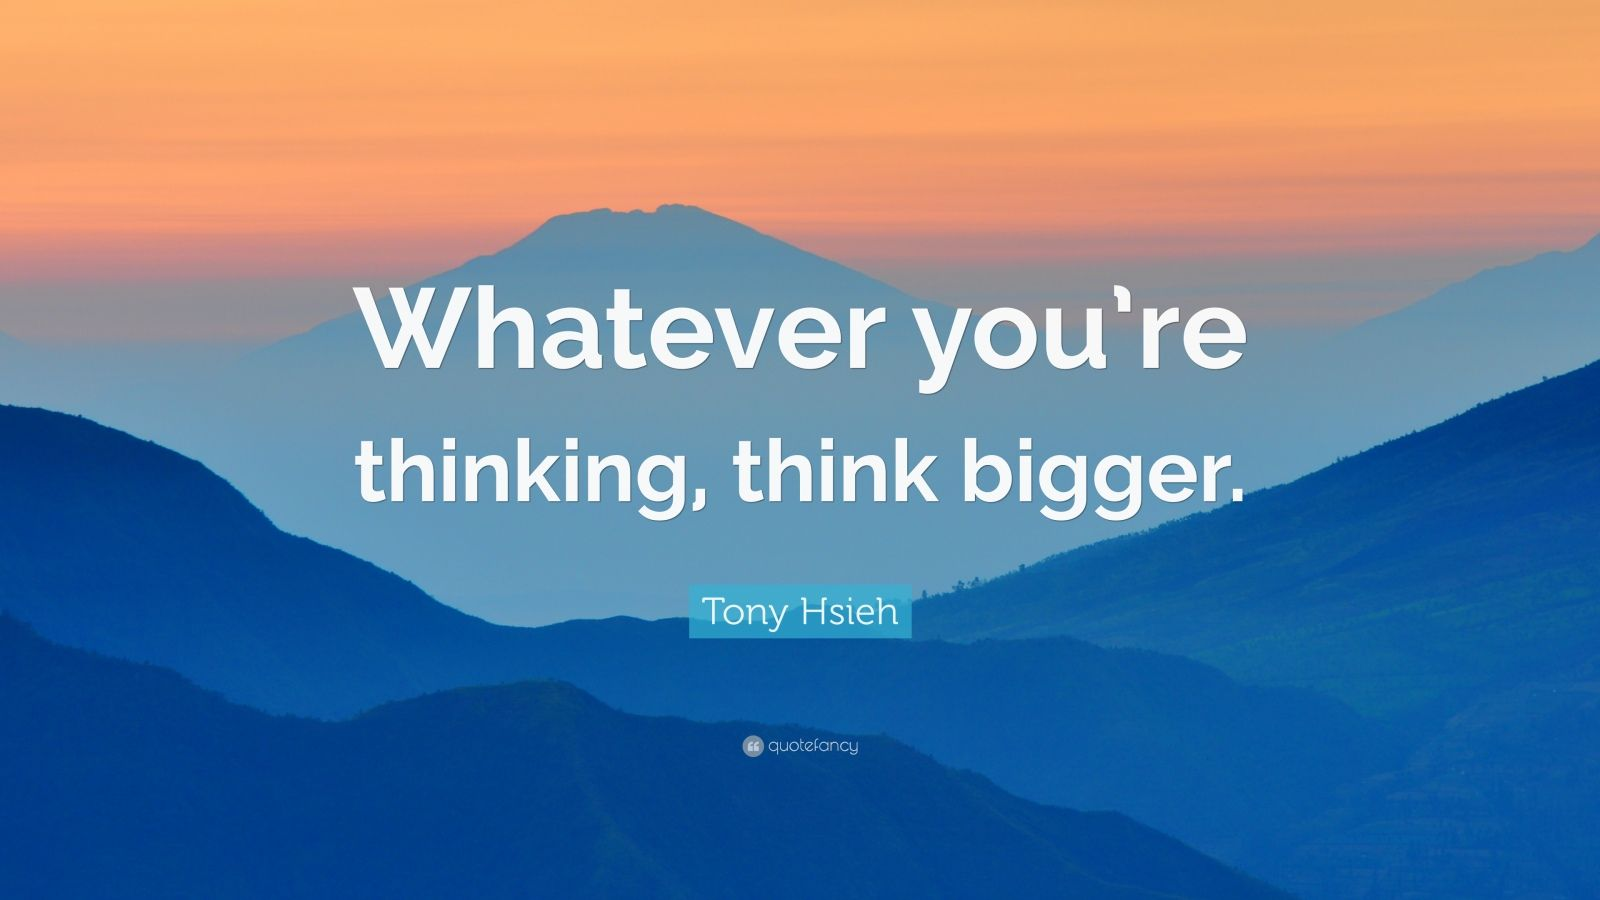 Desktop Wallpaper Motivational Quotes Tony Hsieh Quote Whatever You Re Thinking Think Bigger